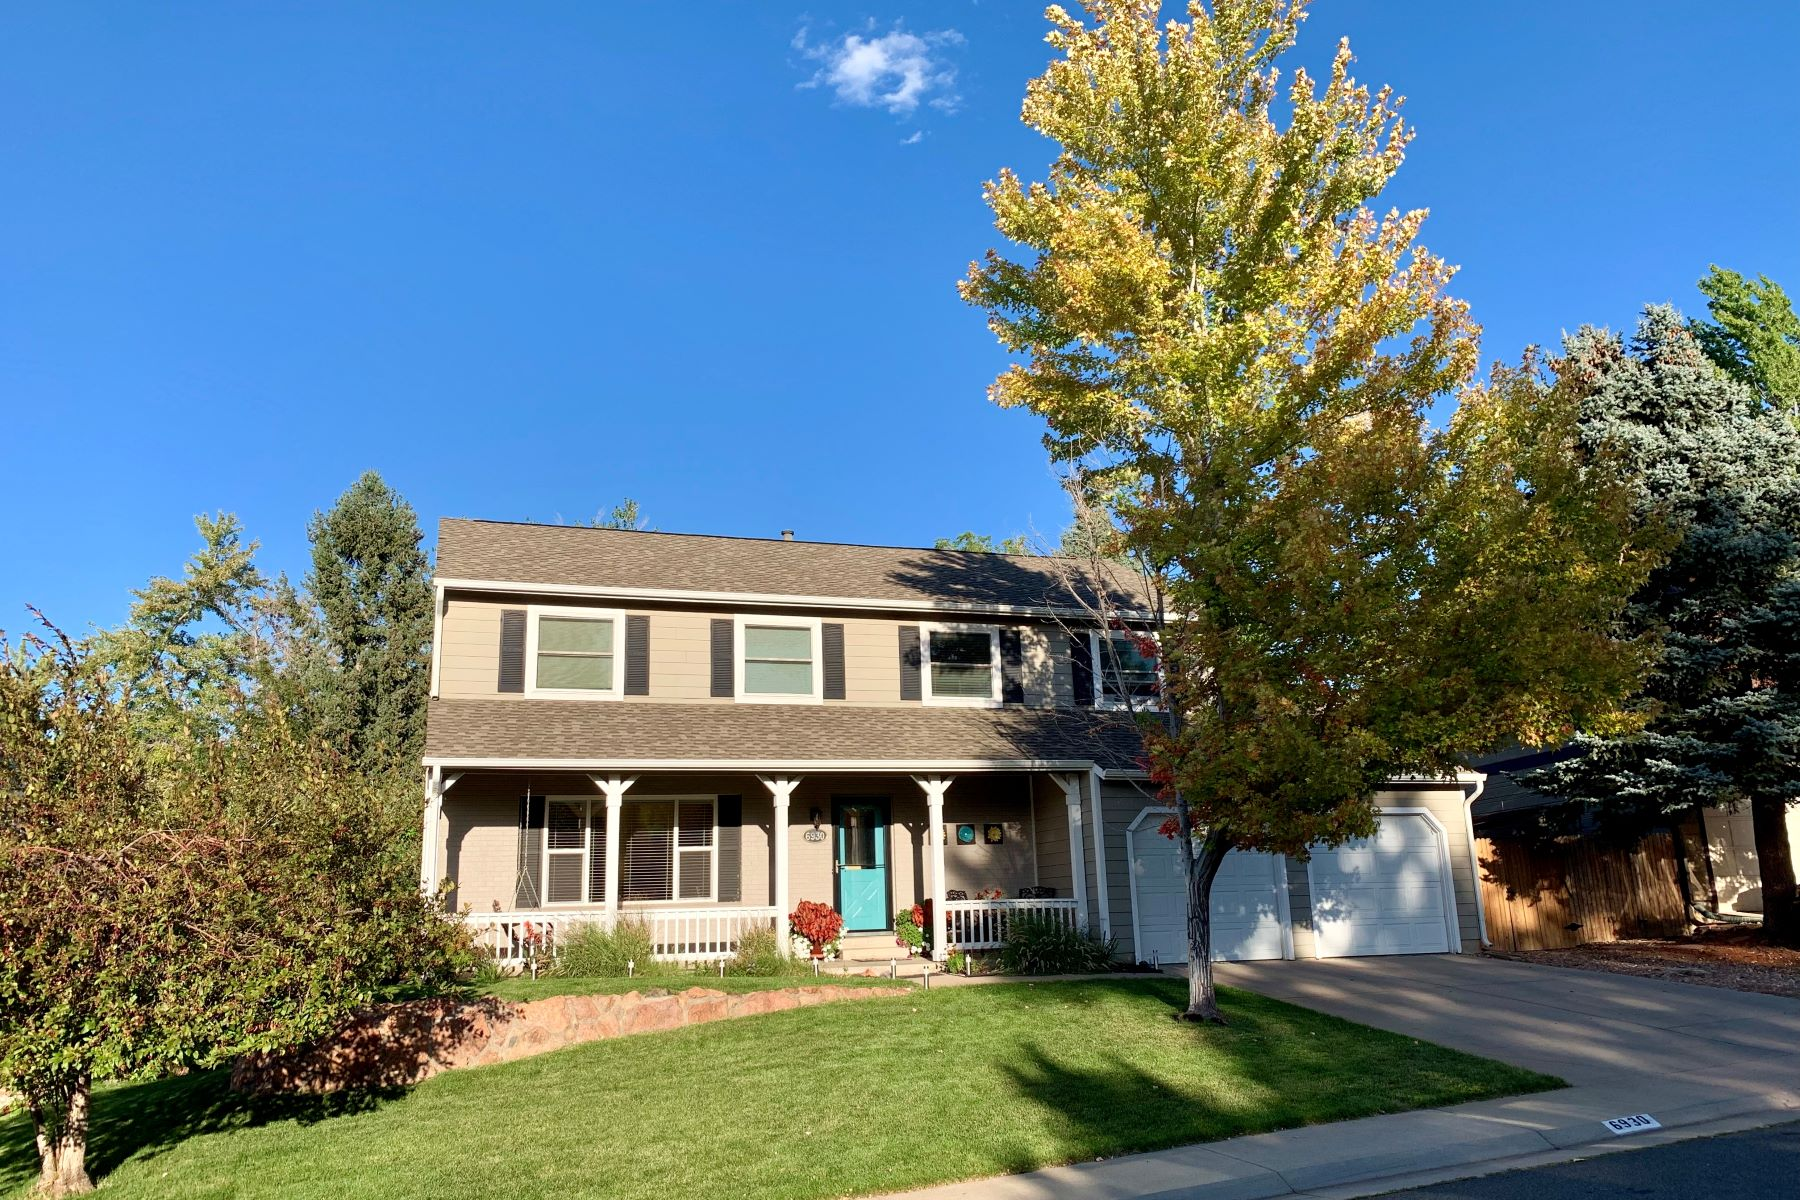 Single Family Homes のために 売買 アット Gorgeous two-story; turn-key and located in a great neighborhood 6930 South Eudora Street Centennial, コロラド 80122 アメリカ